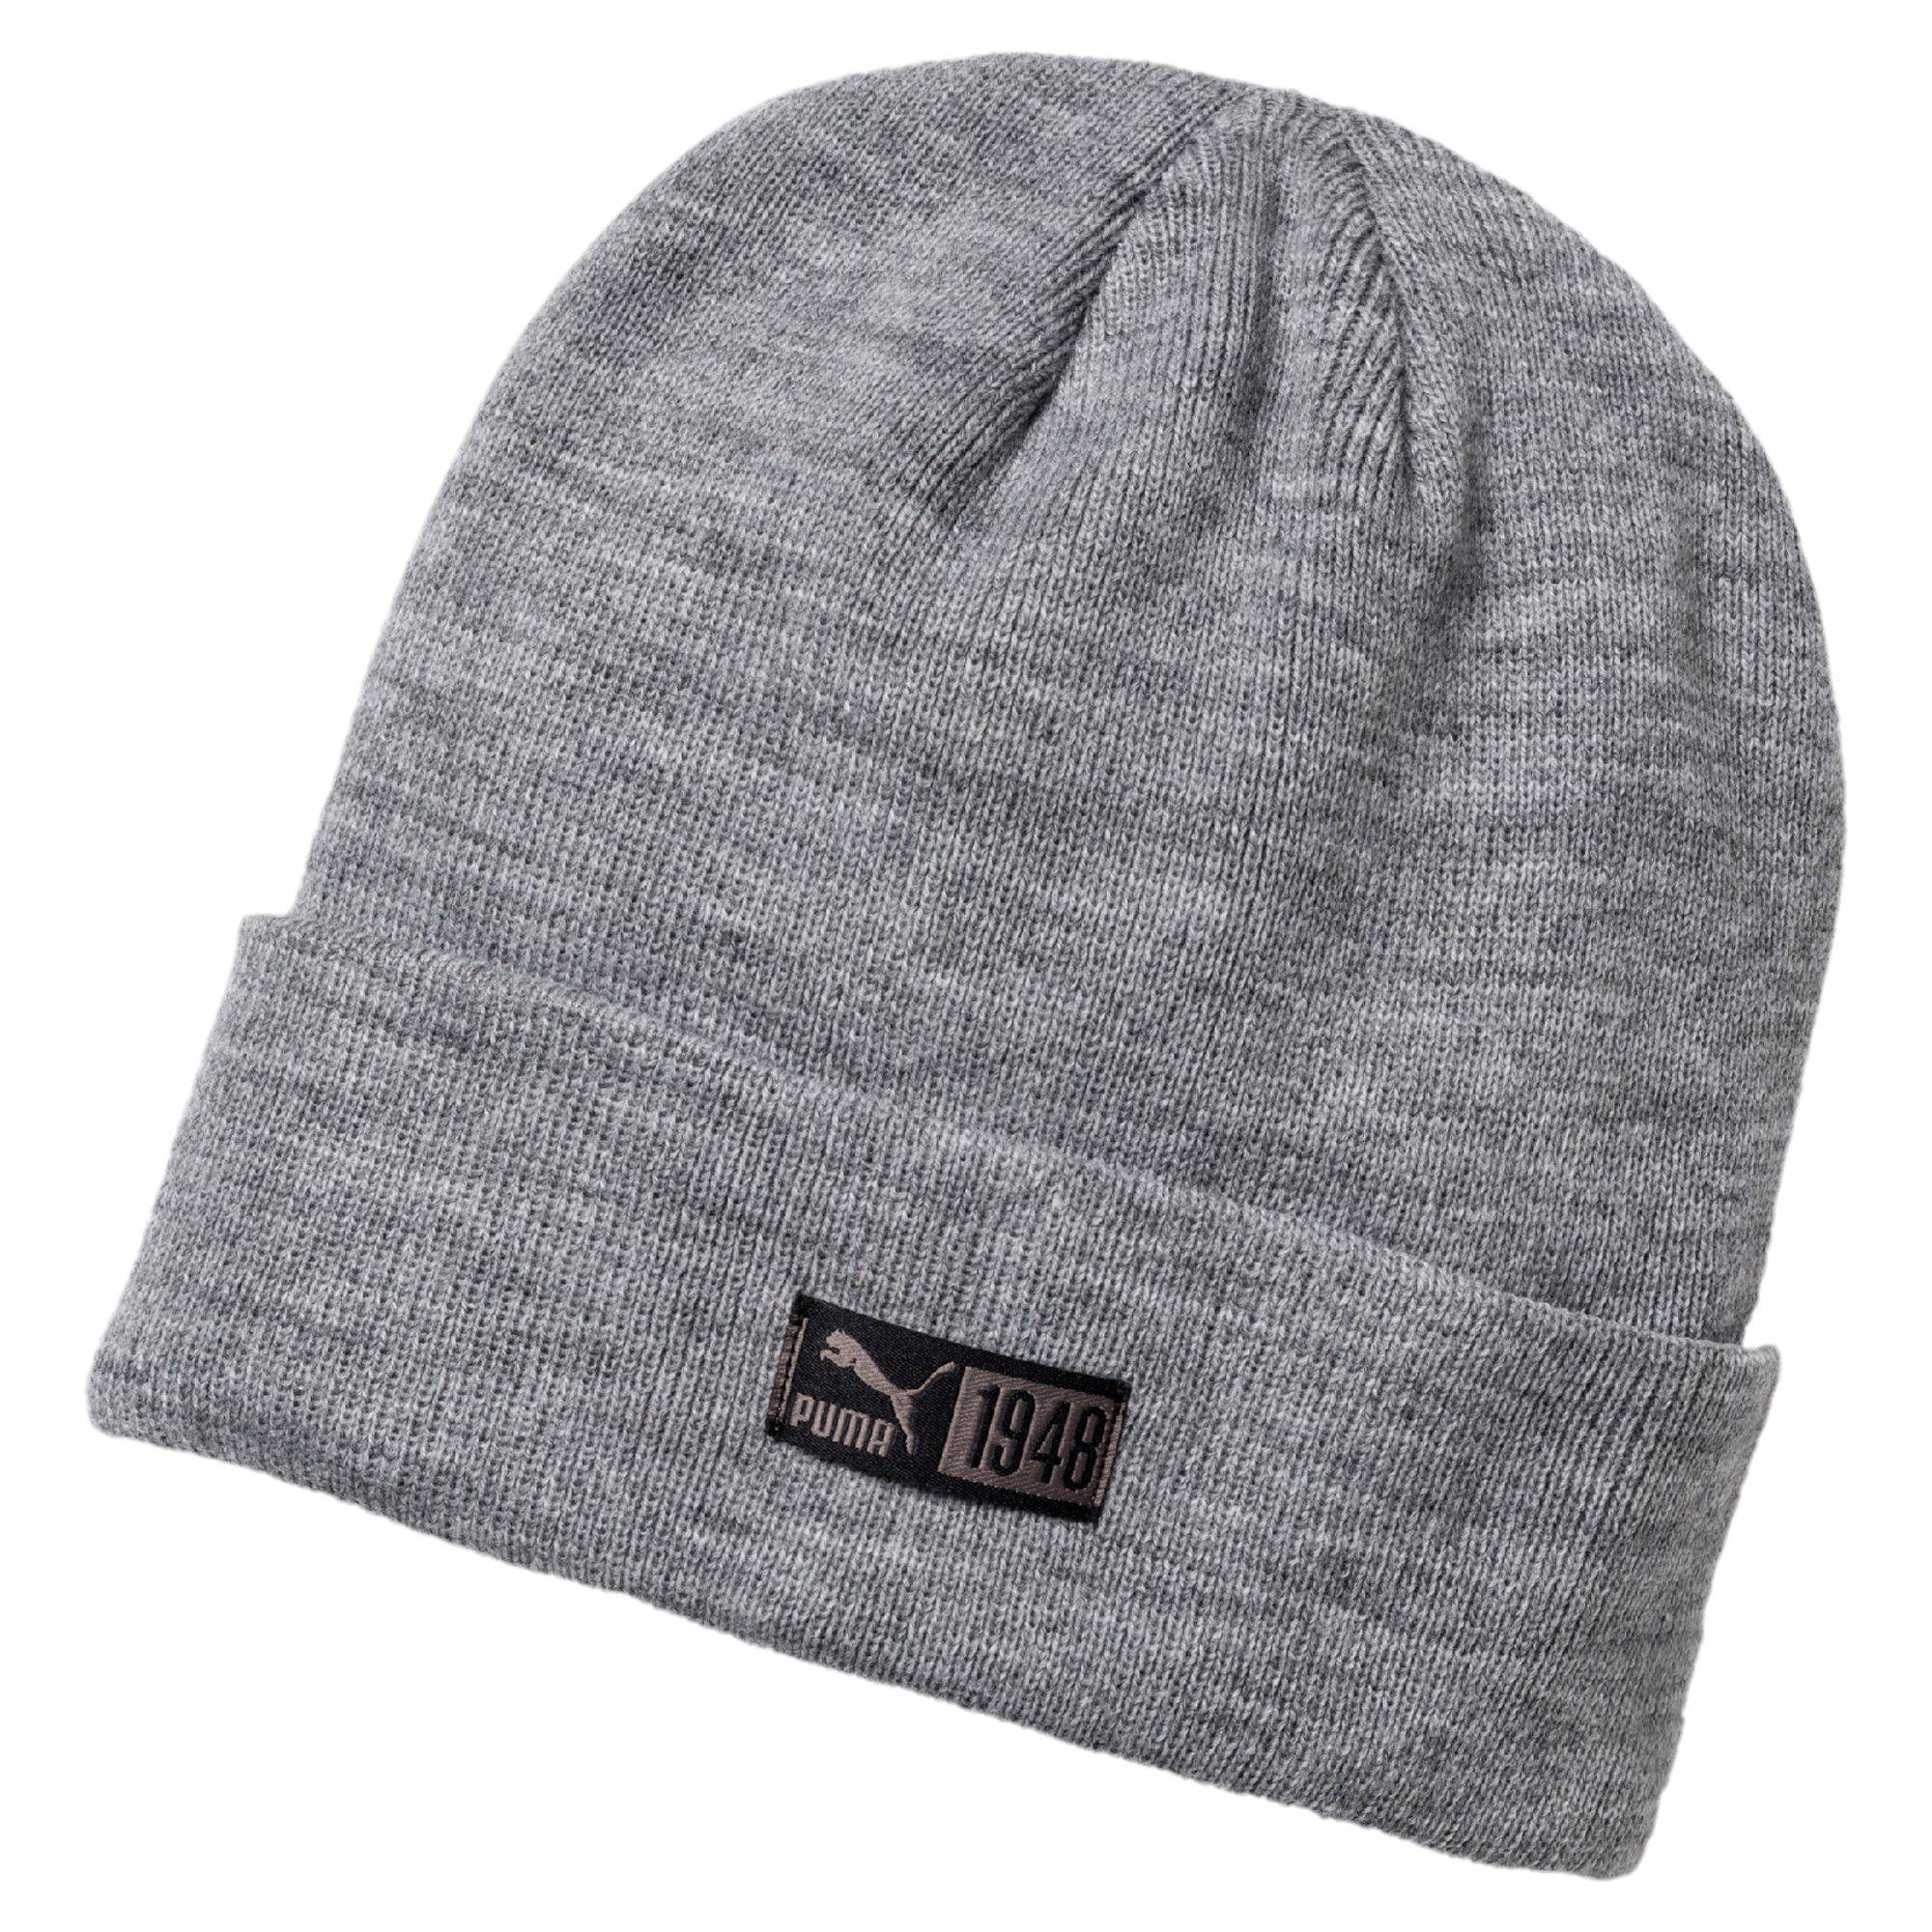 Архивы Classic Beanie